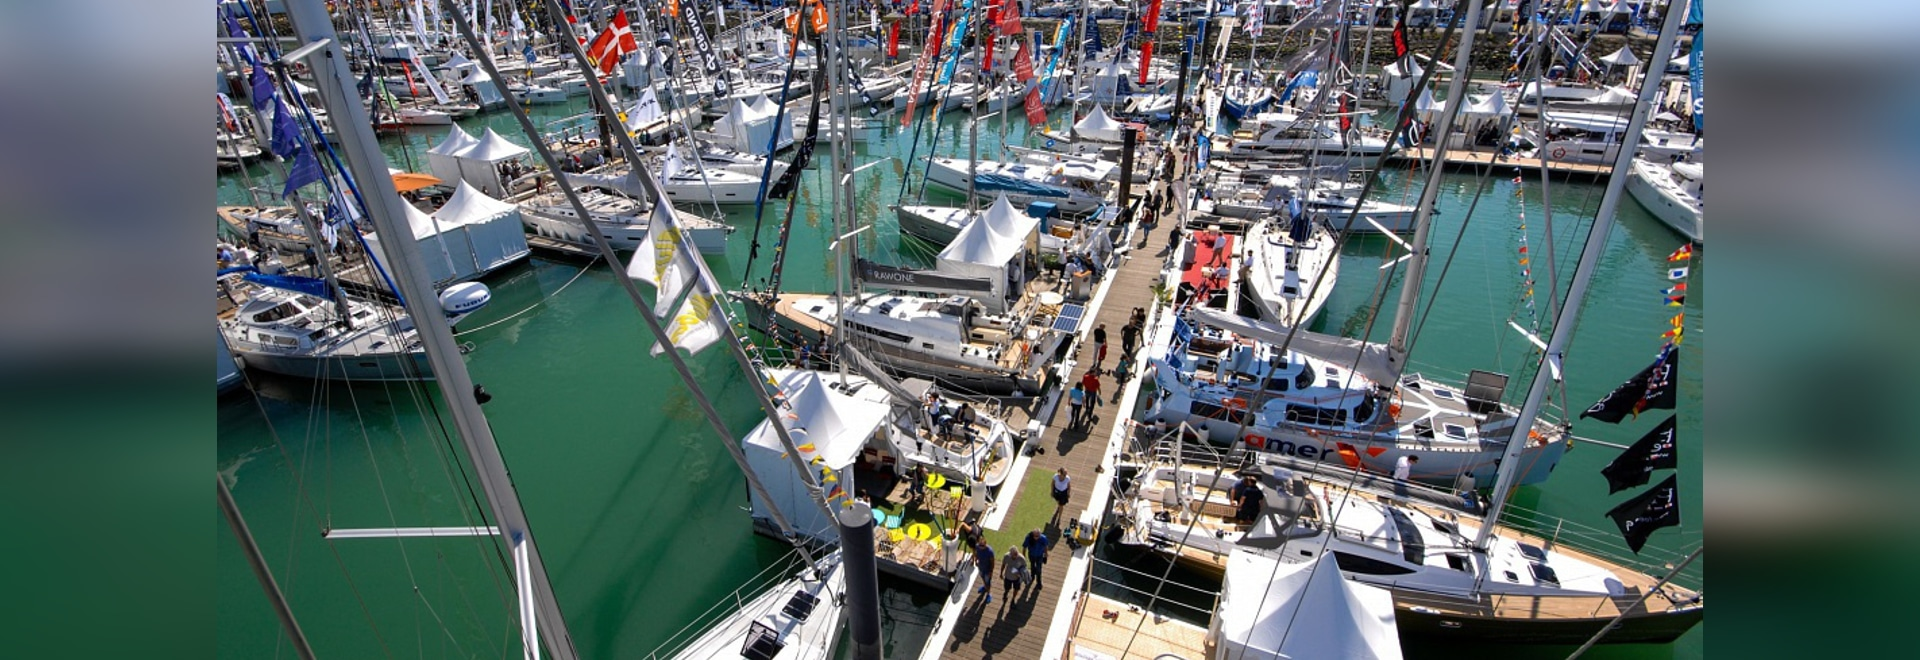 The Grand Pavois La Rochelle will go ahead as planned in 2020.